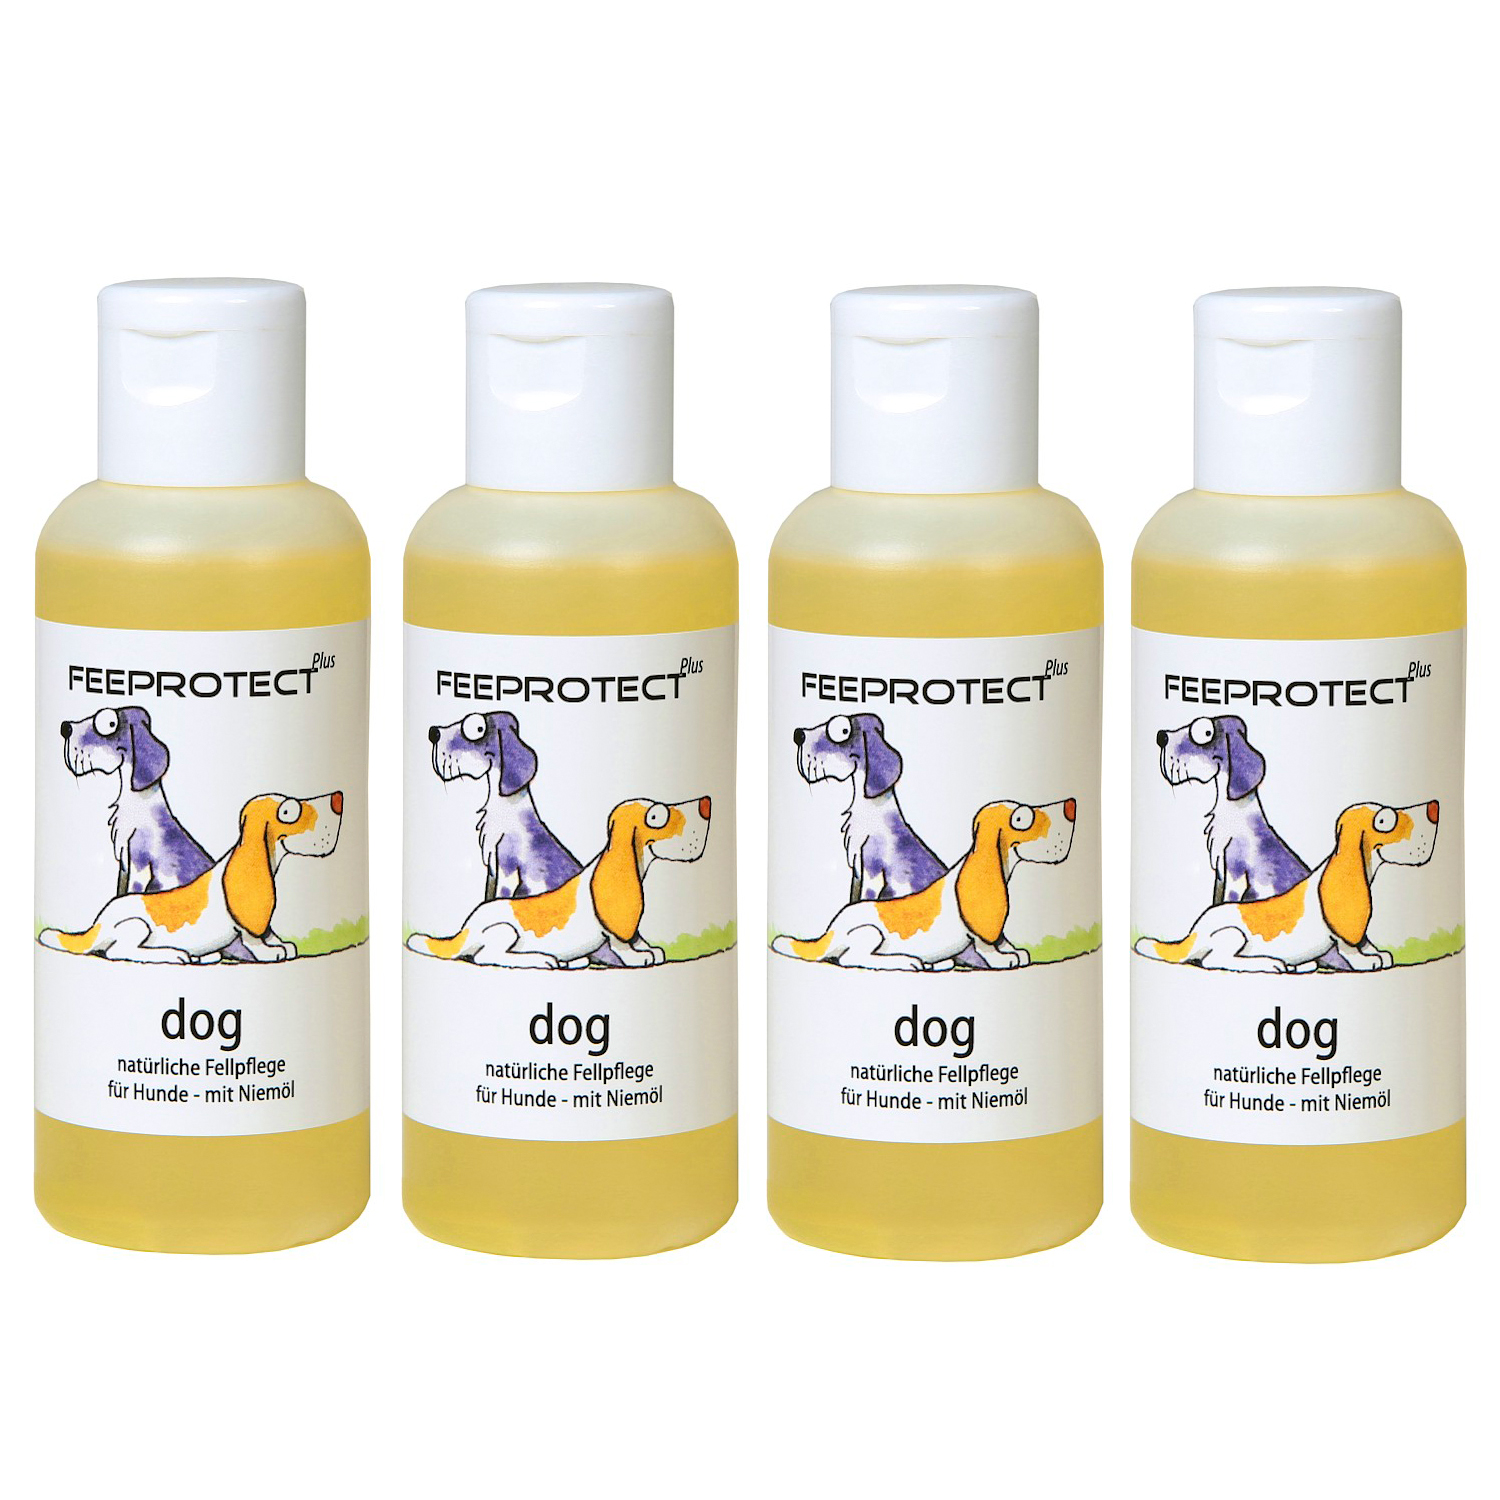 Feeprotect ® dog plus Fellpflege mit Niemöl